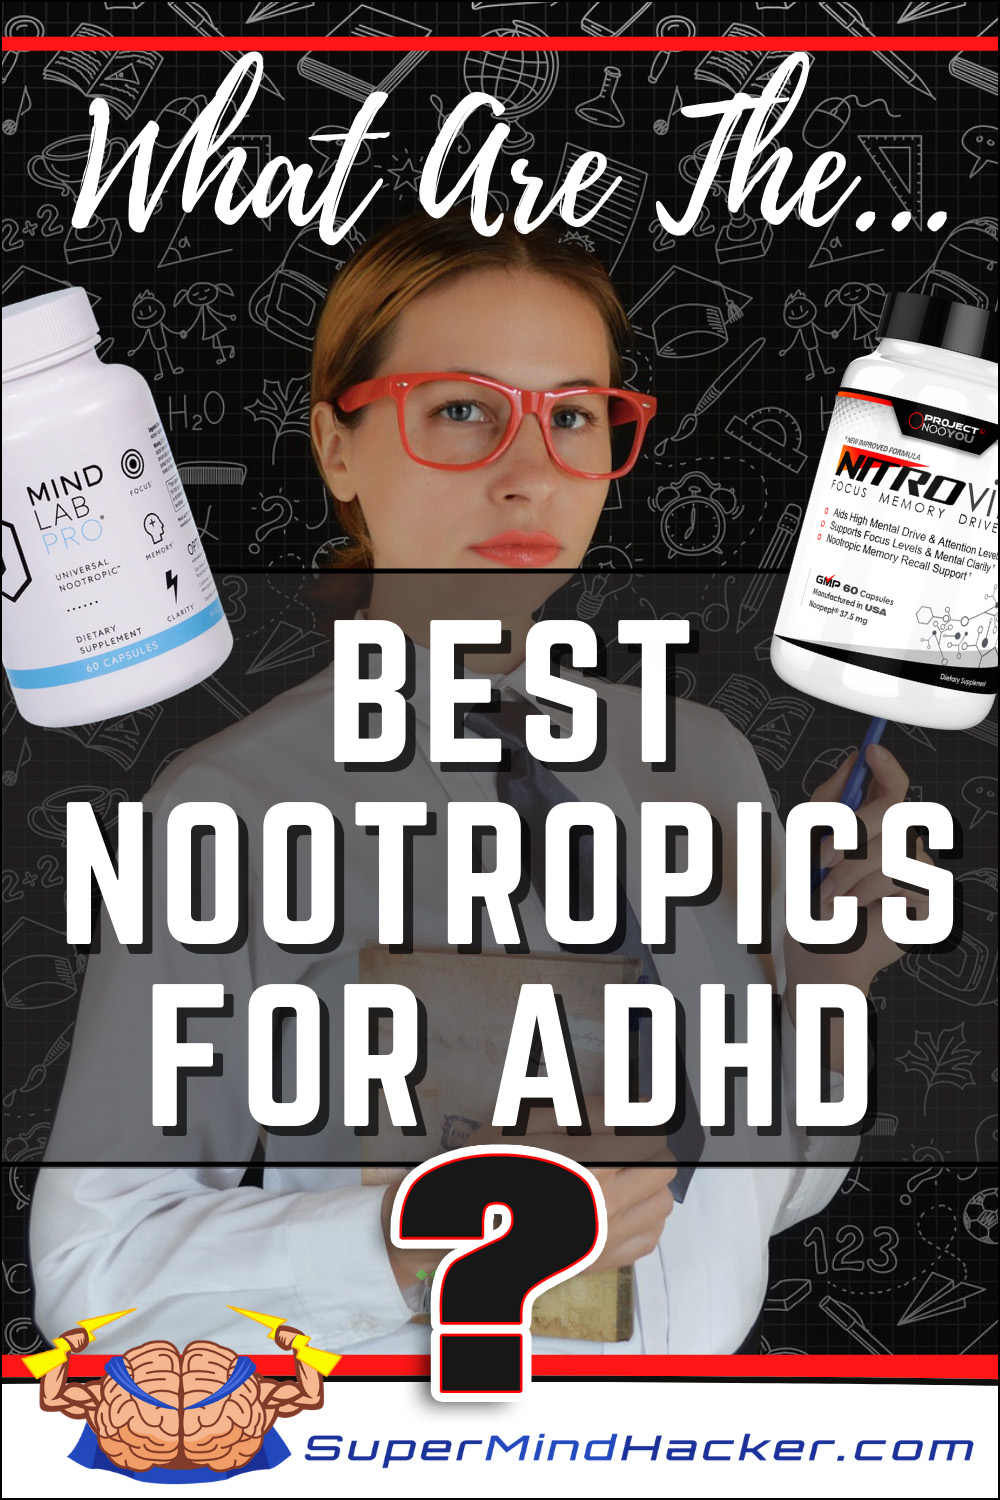 what are the best nootropics for adhd